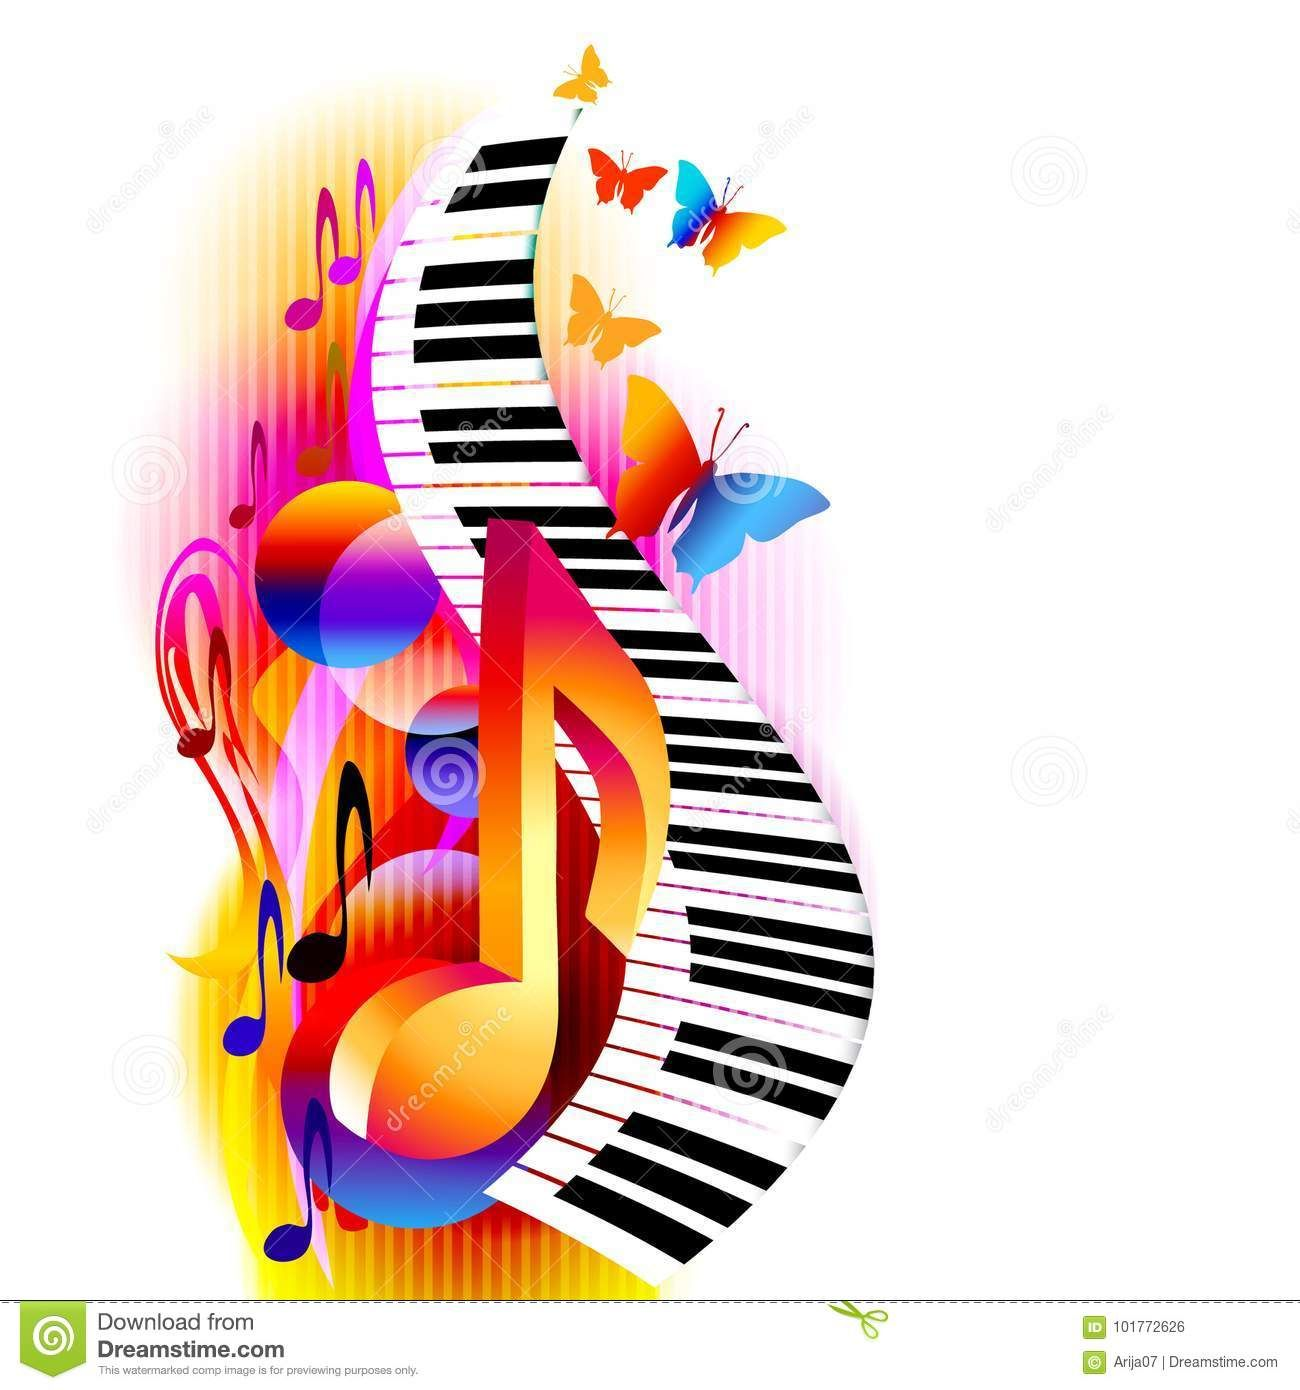 Colorful 3d Music Notes With Piano Keyboard And Butterfly Stock Vector Illustration Of Illustration Organ Music Notes Art Music Illustration Music Painting